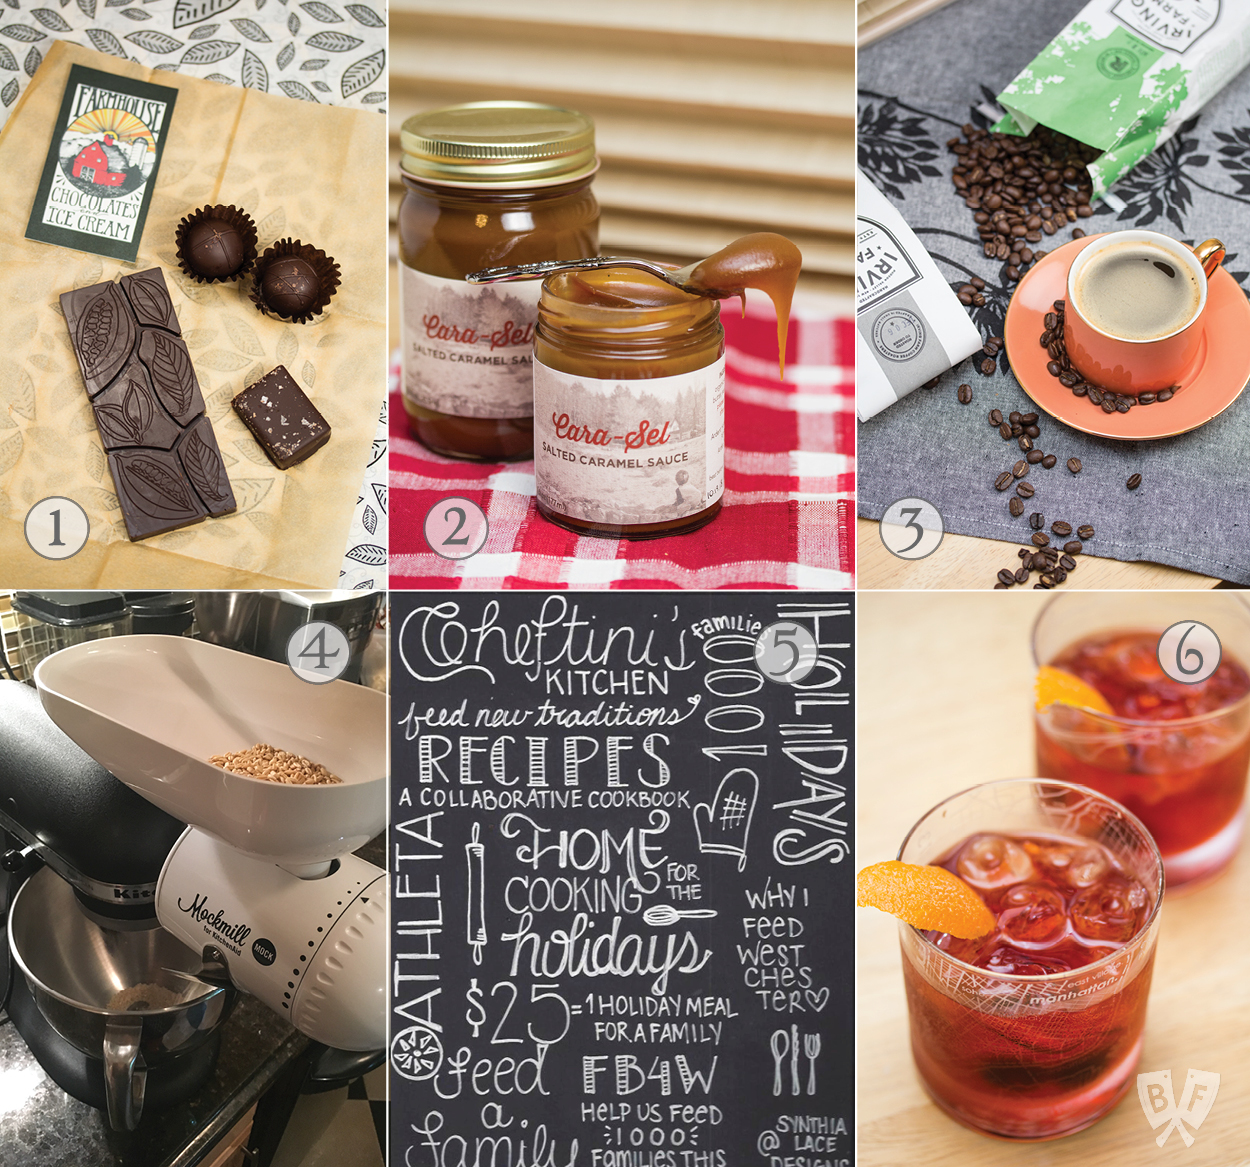 Big Flavors 2016 Holiday Gift Guide: Edible (and drinkable!) gifts are a fun, festive way to celebrate the holidays. Check out my top picks!